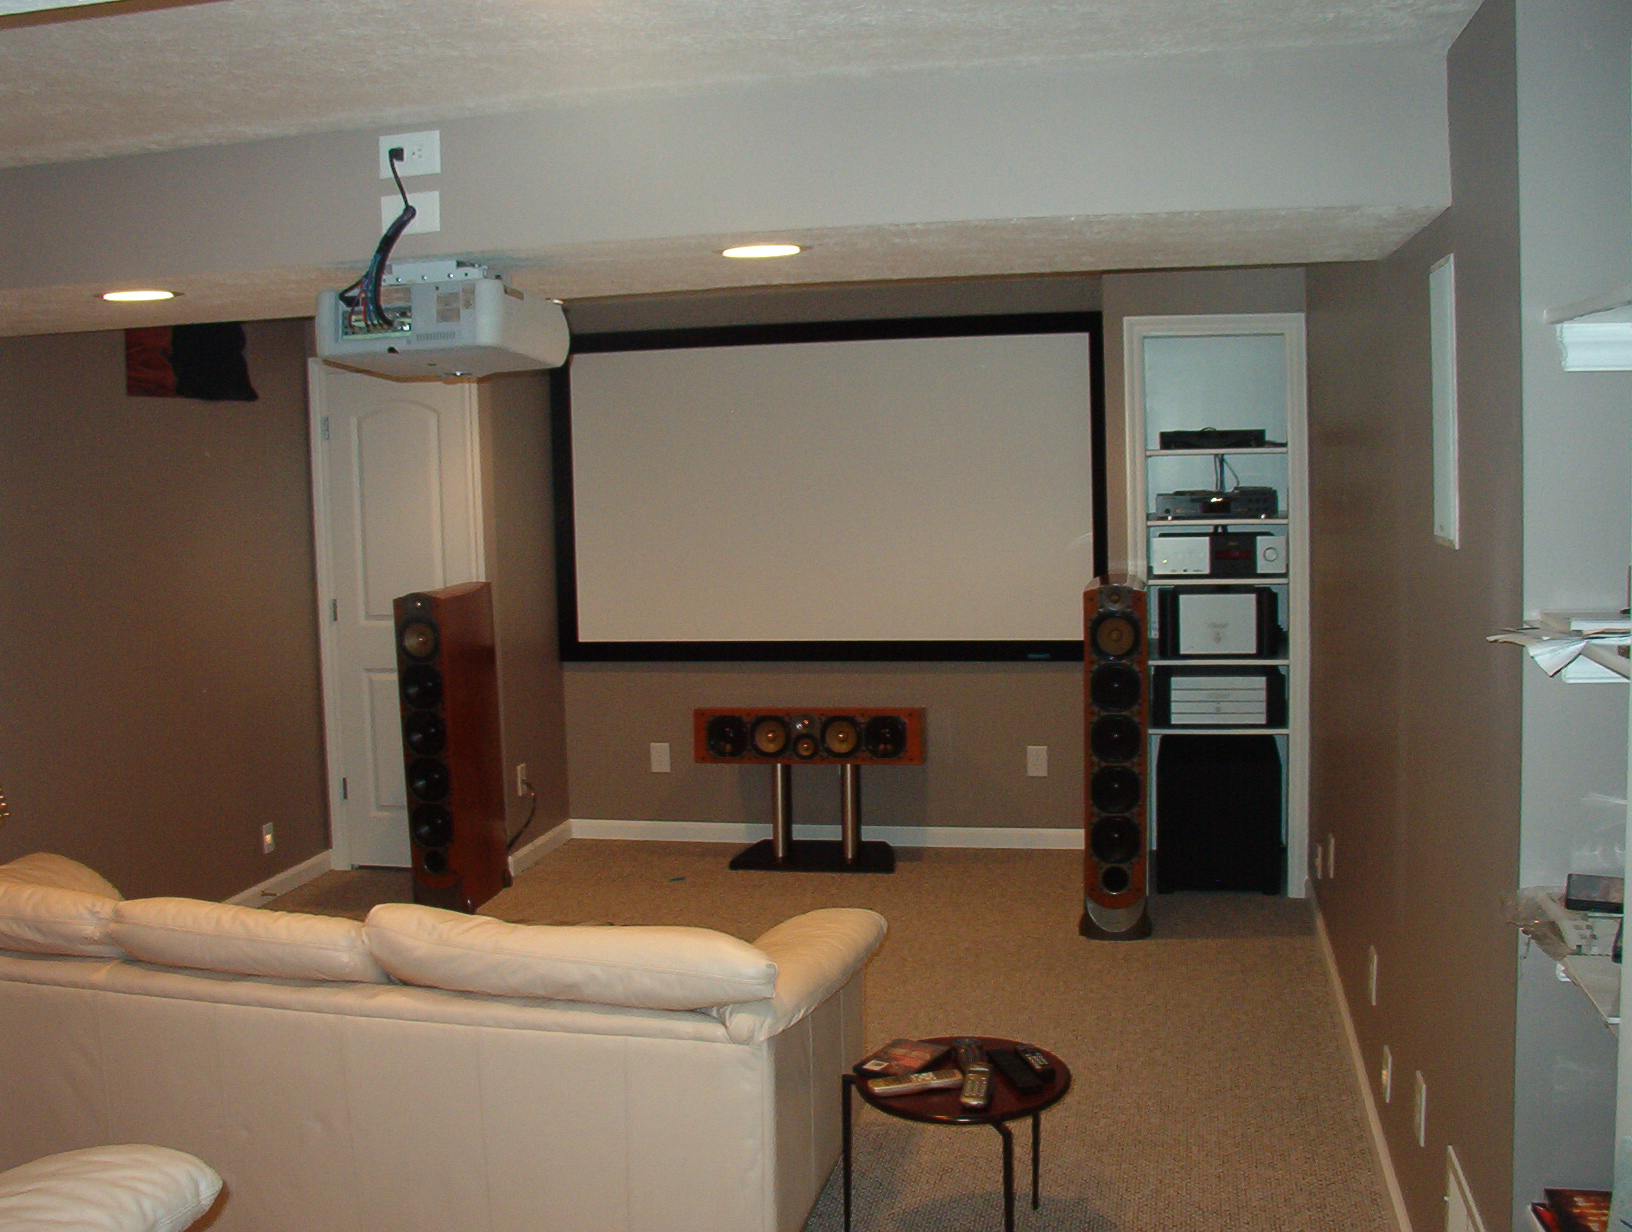 Bbrii44 Bedroom Basement Remodeling Ideas Inspiration Today 2020 10 02 Download Here